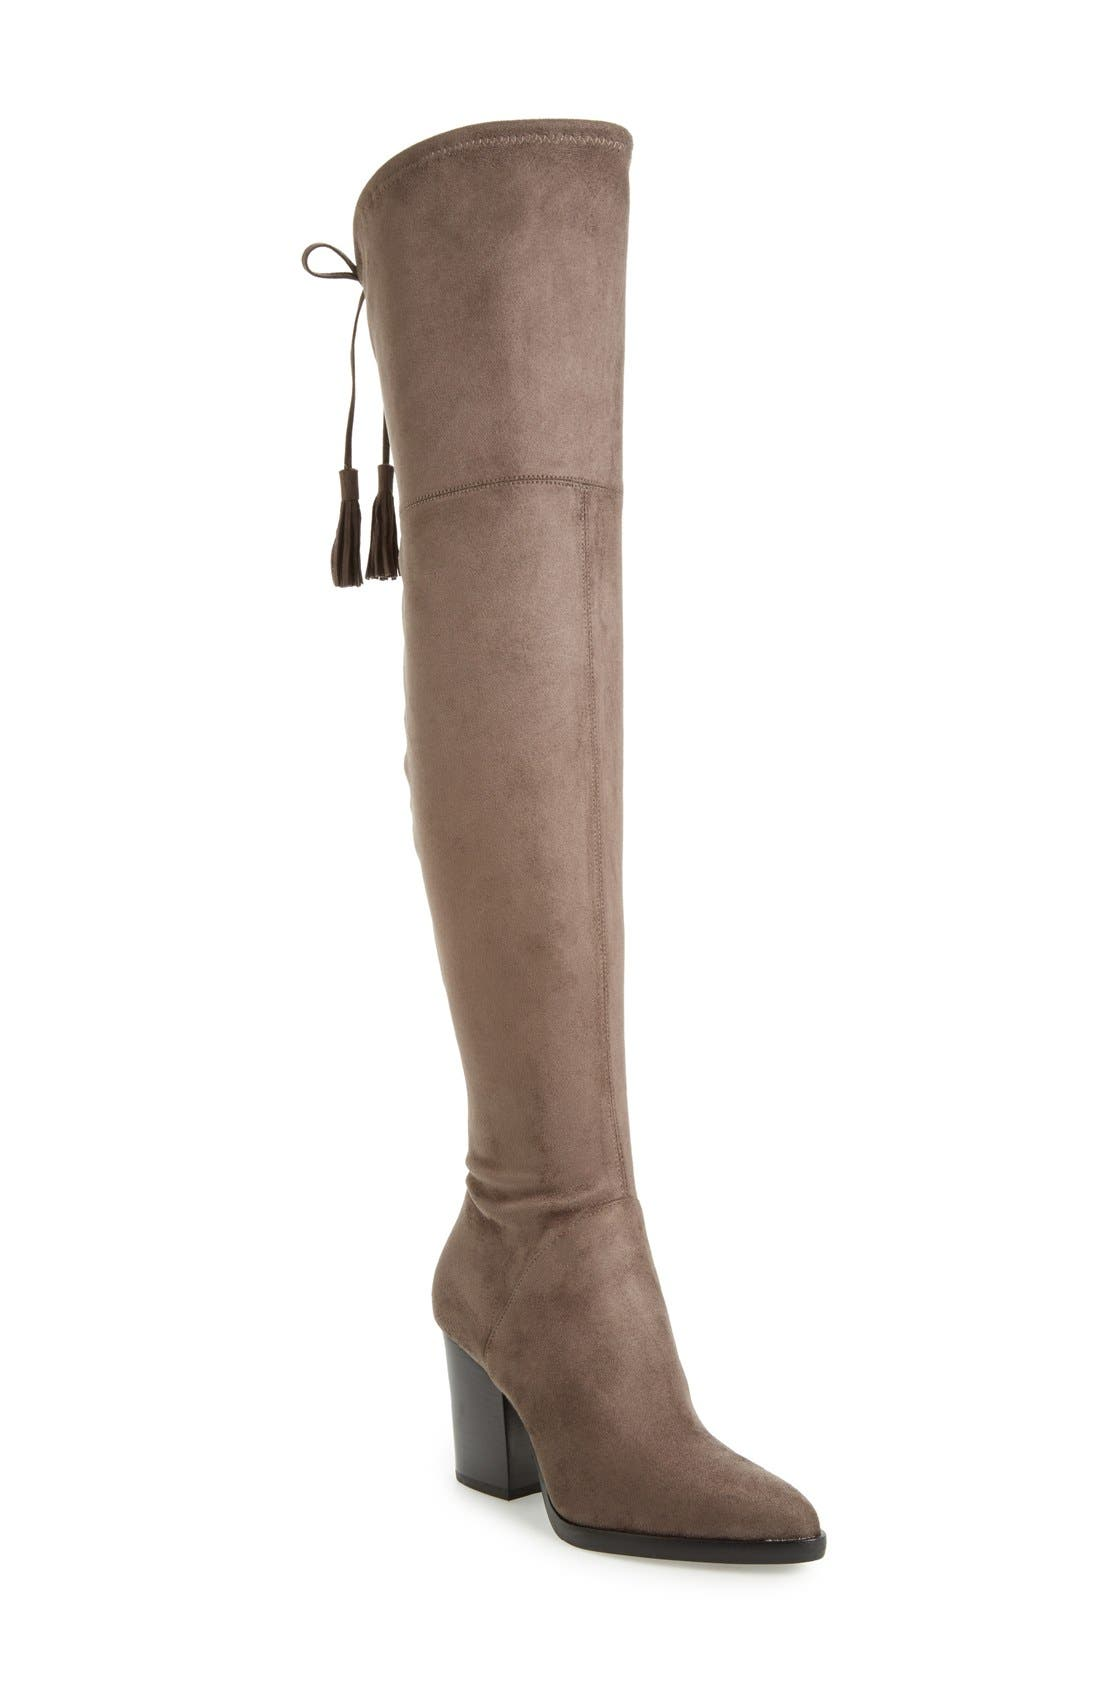 Main Image - Marc Fisher LTD 'Alinda' Over the Knee Boot (Women)